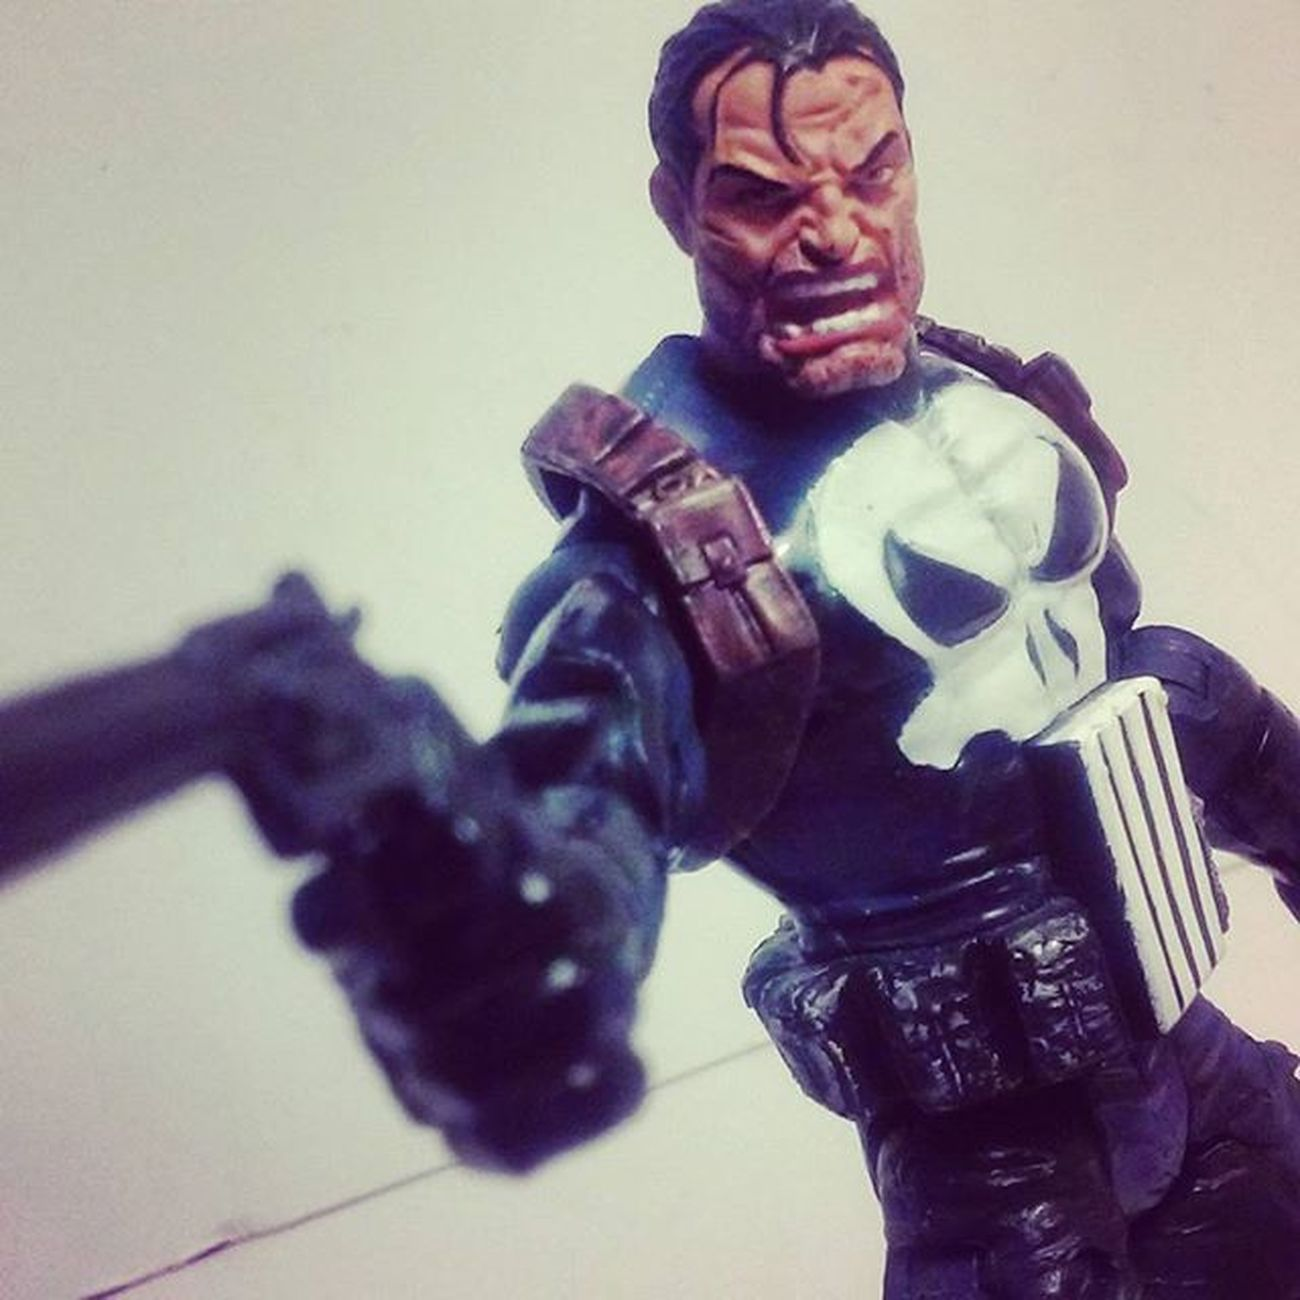 """Sweet dreams punk"" ThePunisher Marvellegends Frankcastle Urbanlegends Toybiz Toyslagram Toysrmydrug Netflix Punisher Tcb_peekaboo Tcb_devilwithin TCB Tcb_flyupandaway Mcu Collection Collector Figurecollection Actionfigurephotography Articulatedcomicbook Actiontoyart ACBA Figurelife Figures Nerd Comics"